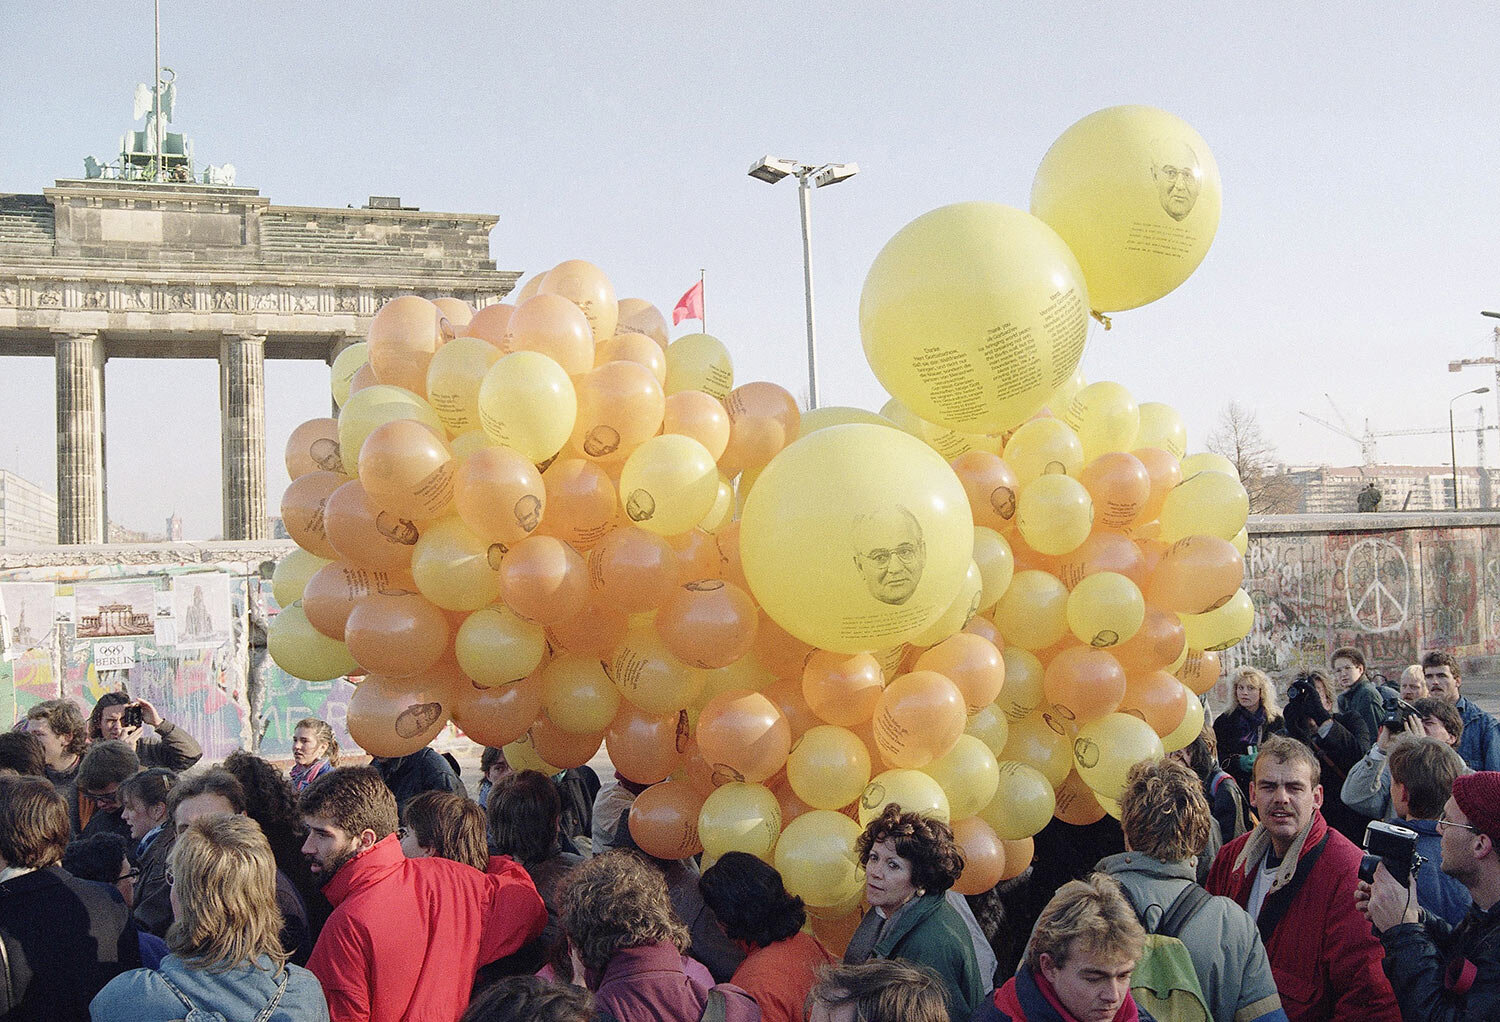 West Berliners release hundreds of balloons with photo of Mikhail S. Gorbachev and a message to the Soviet leader in front of Brandenburg Gate in West Berlin near the wall, Nov. 17, 1989. They wanted to say thank you to Soviet President Mikhail S. Gorbachev for pulling down the wall. (AP Photo/Thomas Kienzle)